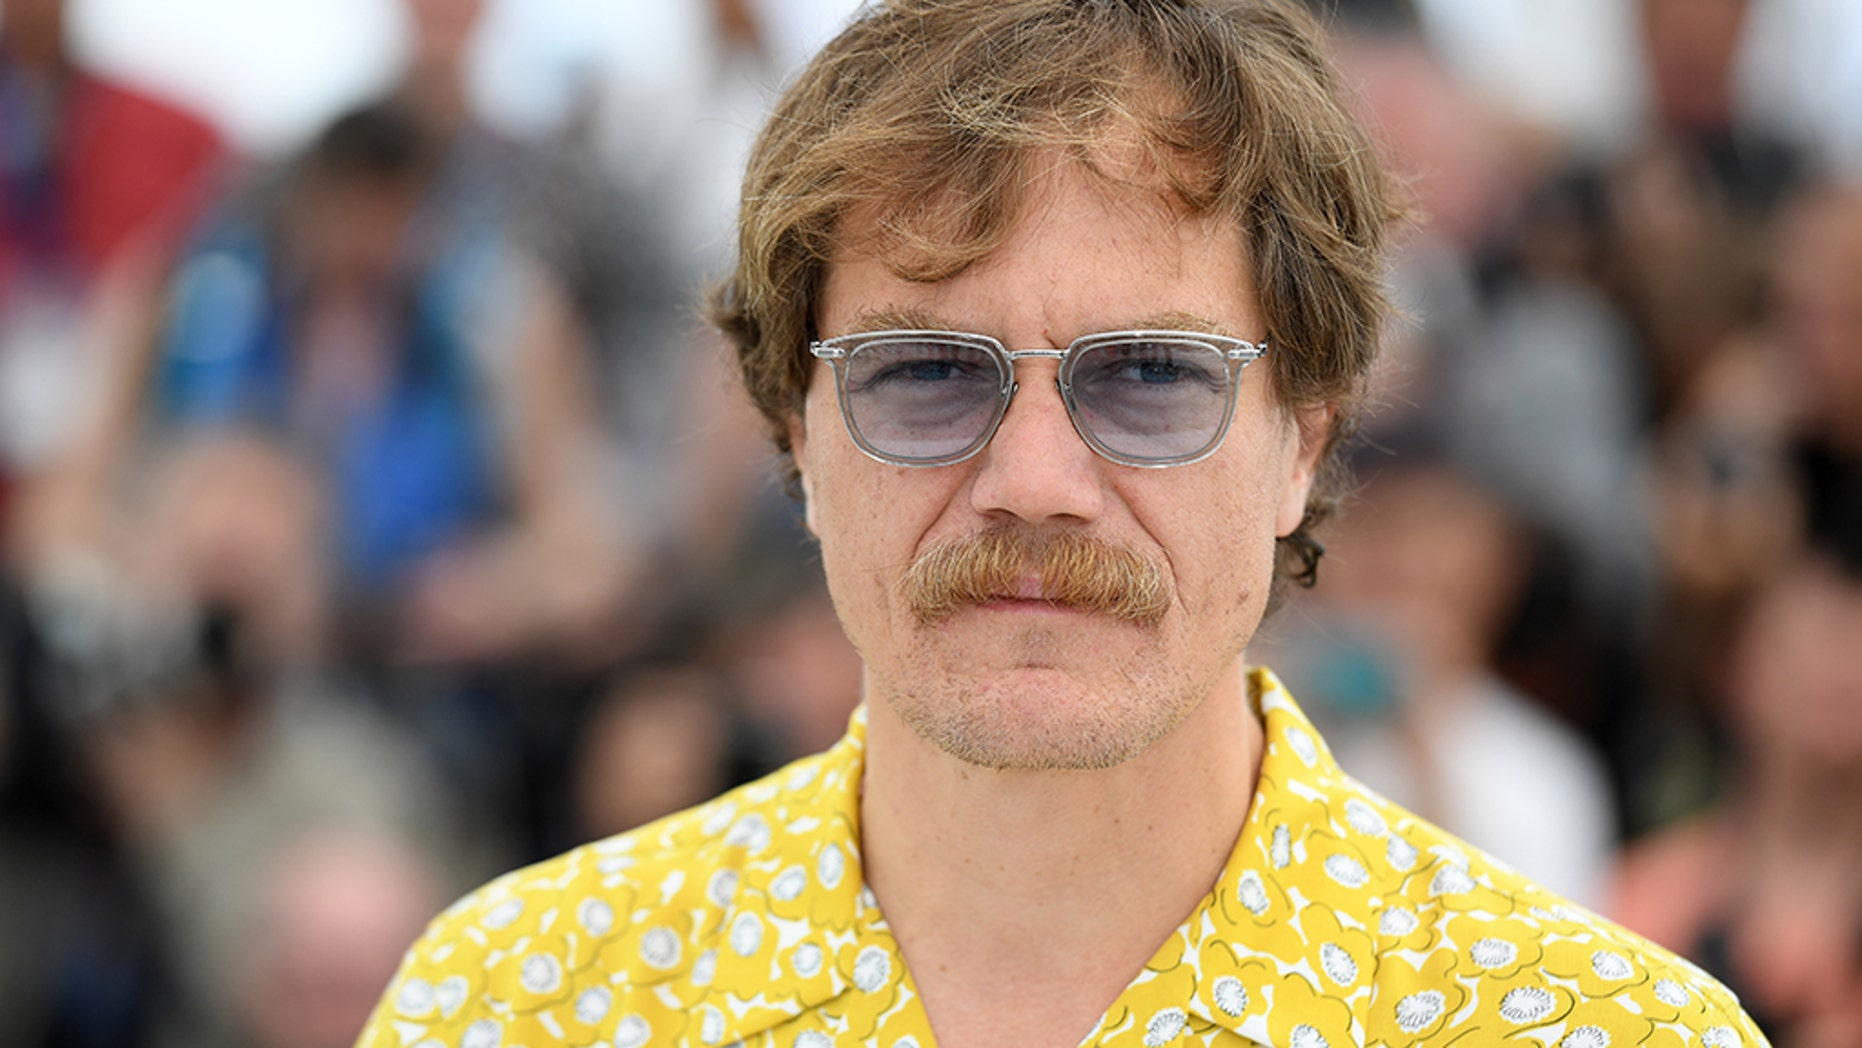 Michael Shannon slammed President Trump in vulgar, profanity-laden rant during an interview with Playboy.